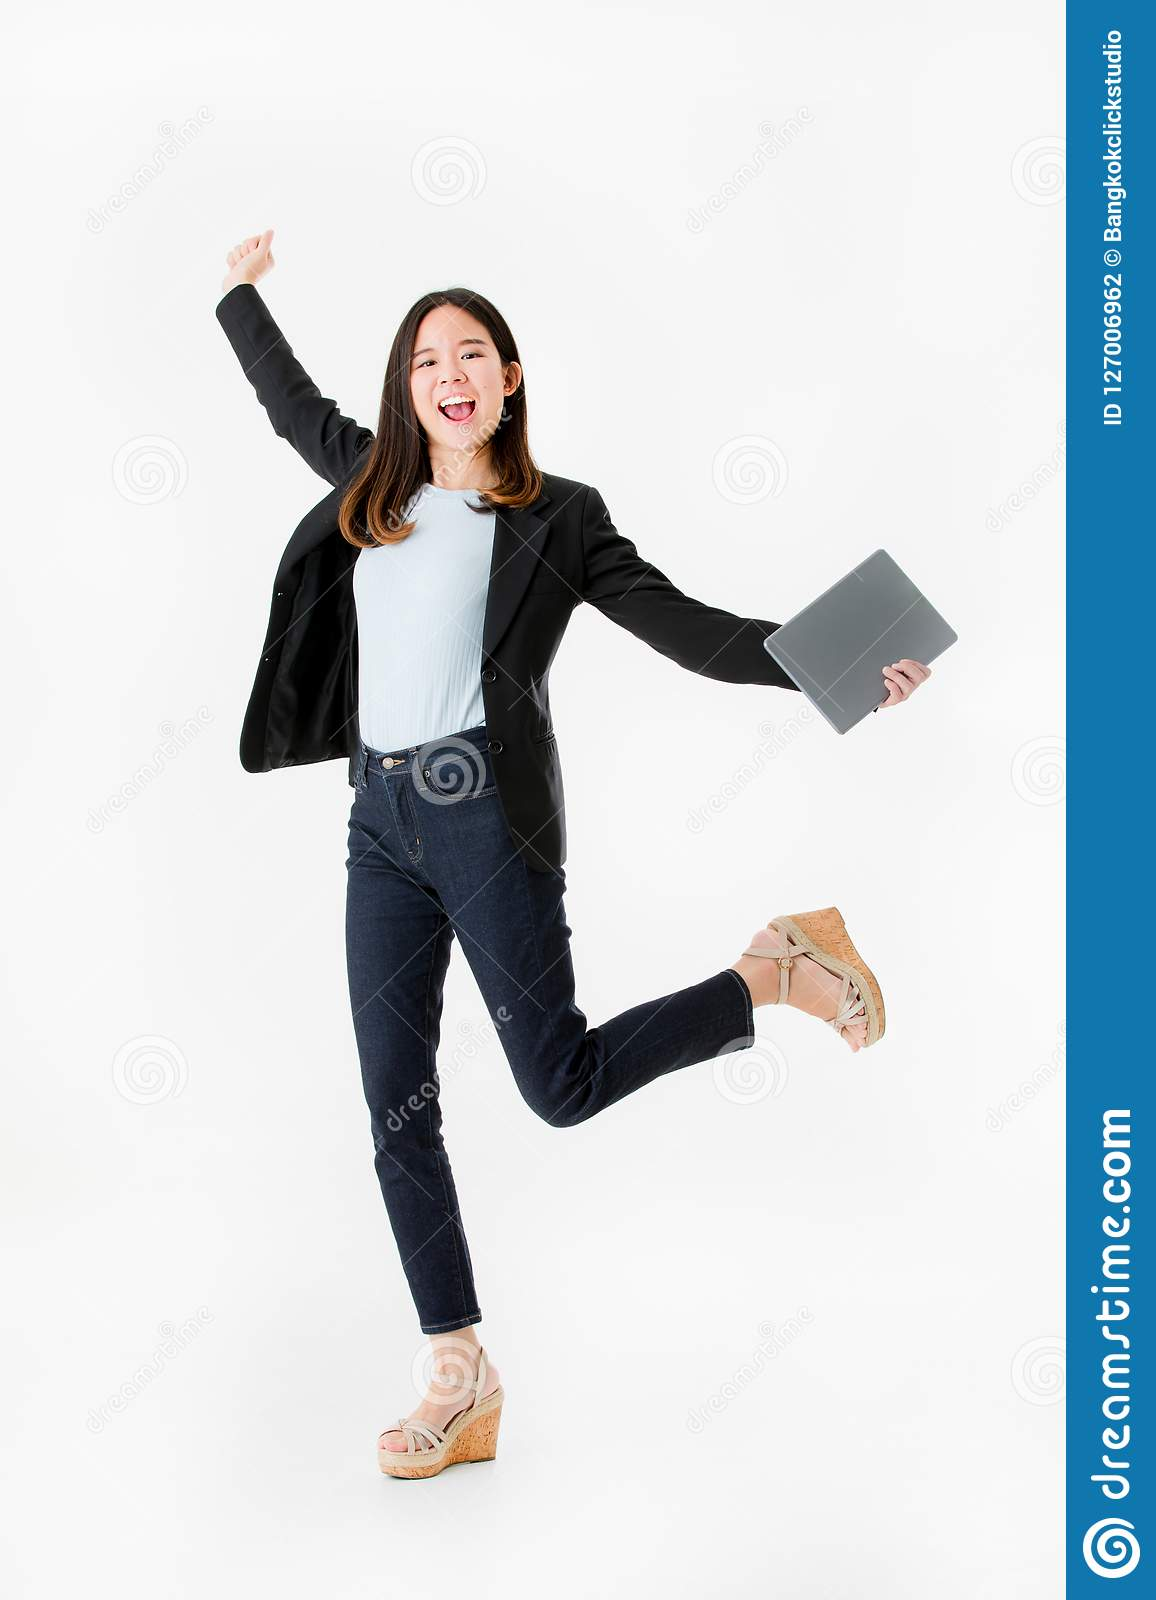 Asian businesswoman in black suit joyful jumping with celebrating successful isolated on white background studio shot.